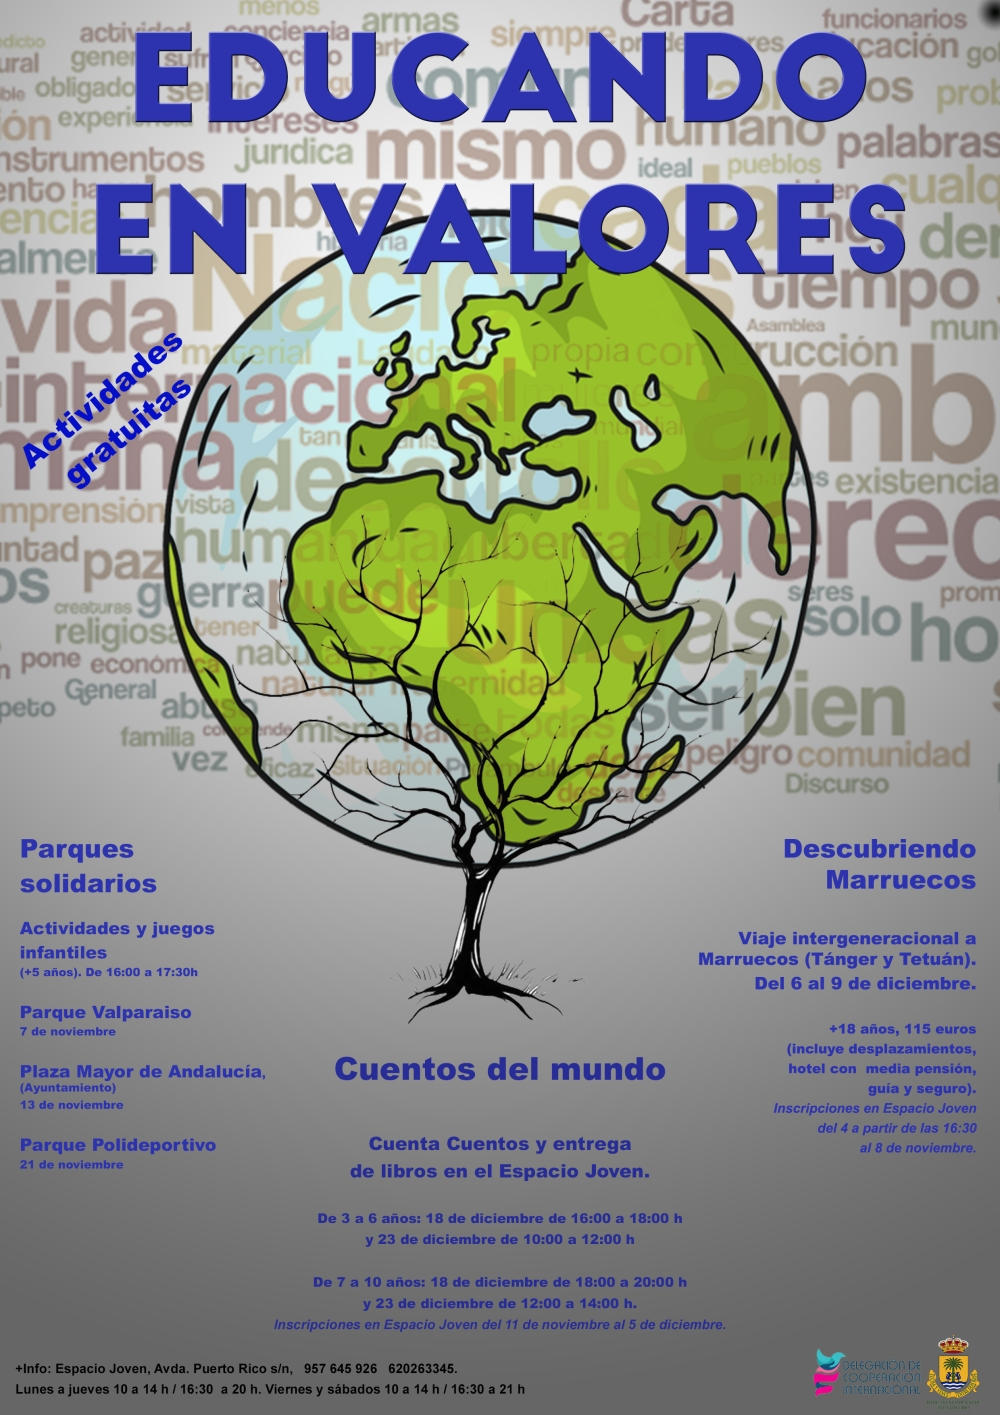 https://www.palmadelrio.es/sites/default/files/educando_en_valores.jpg